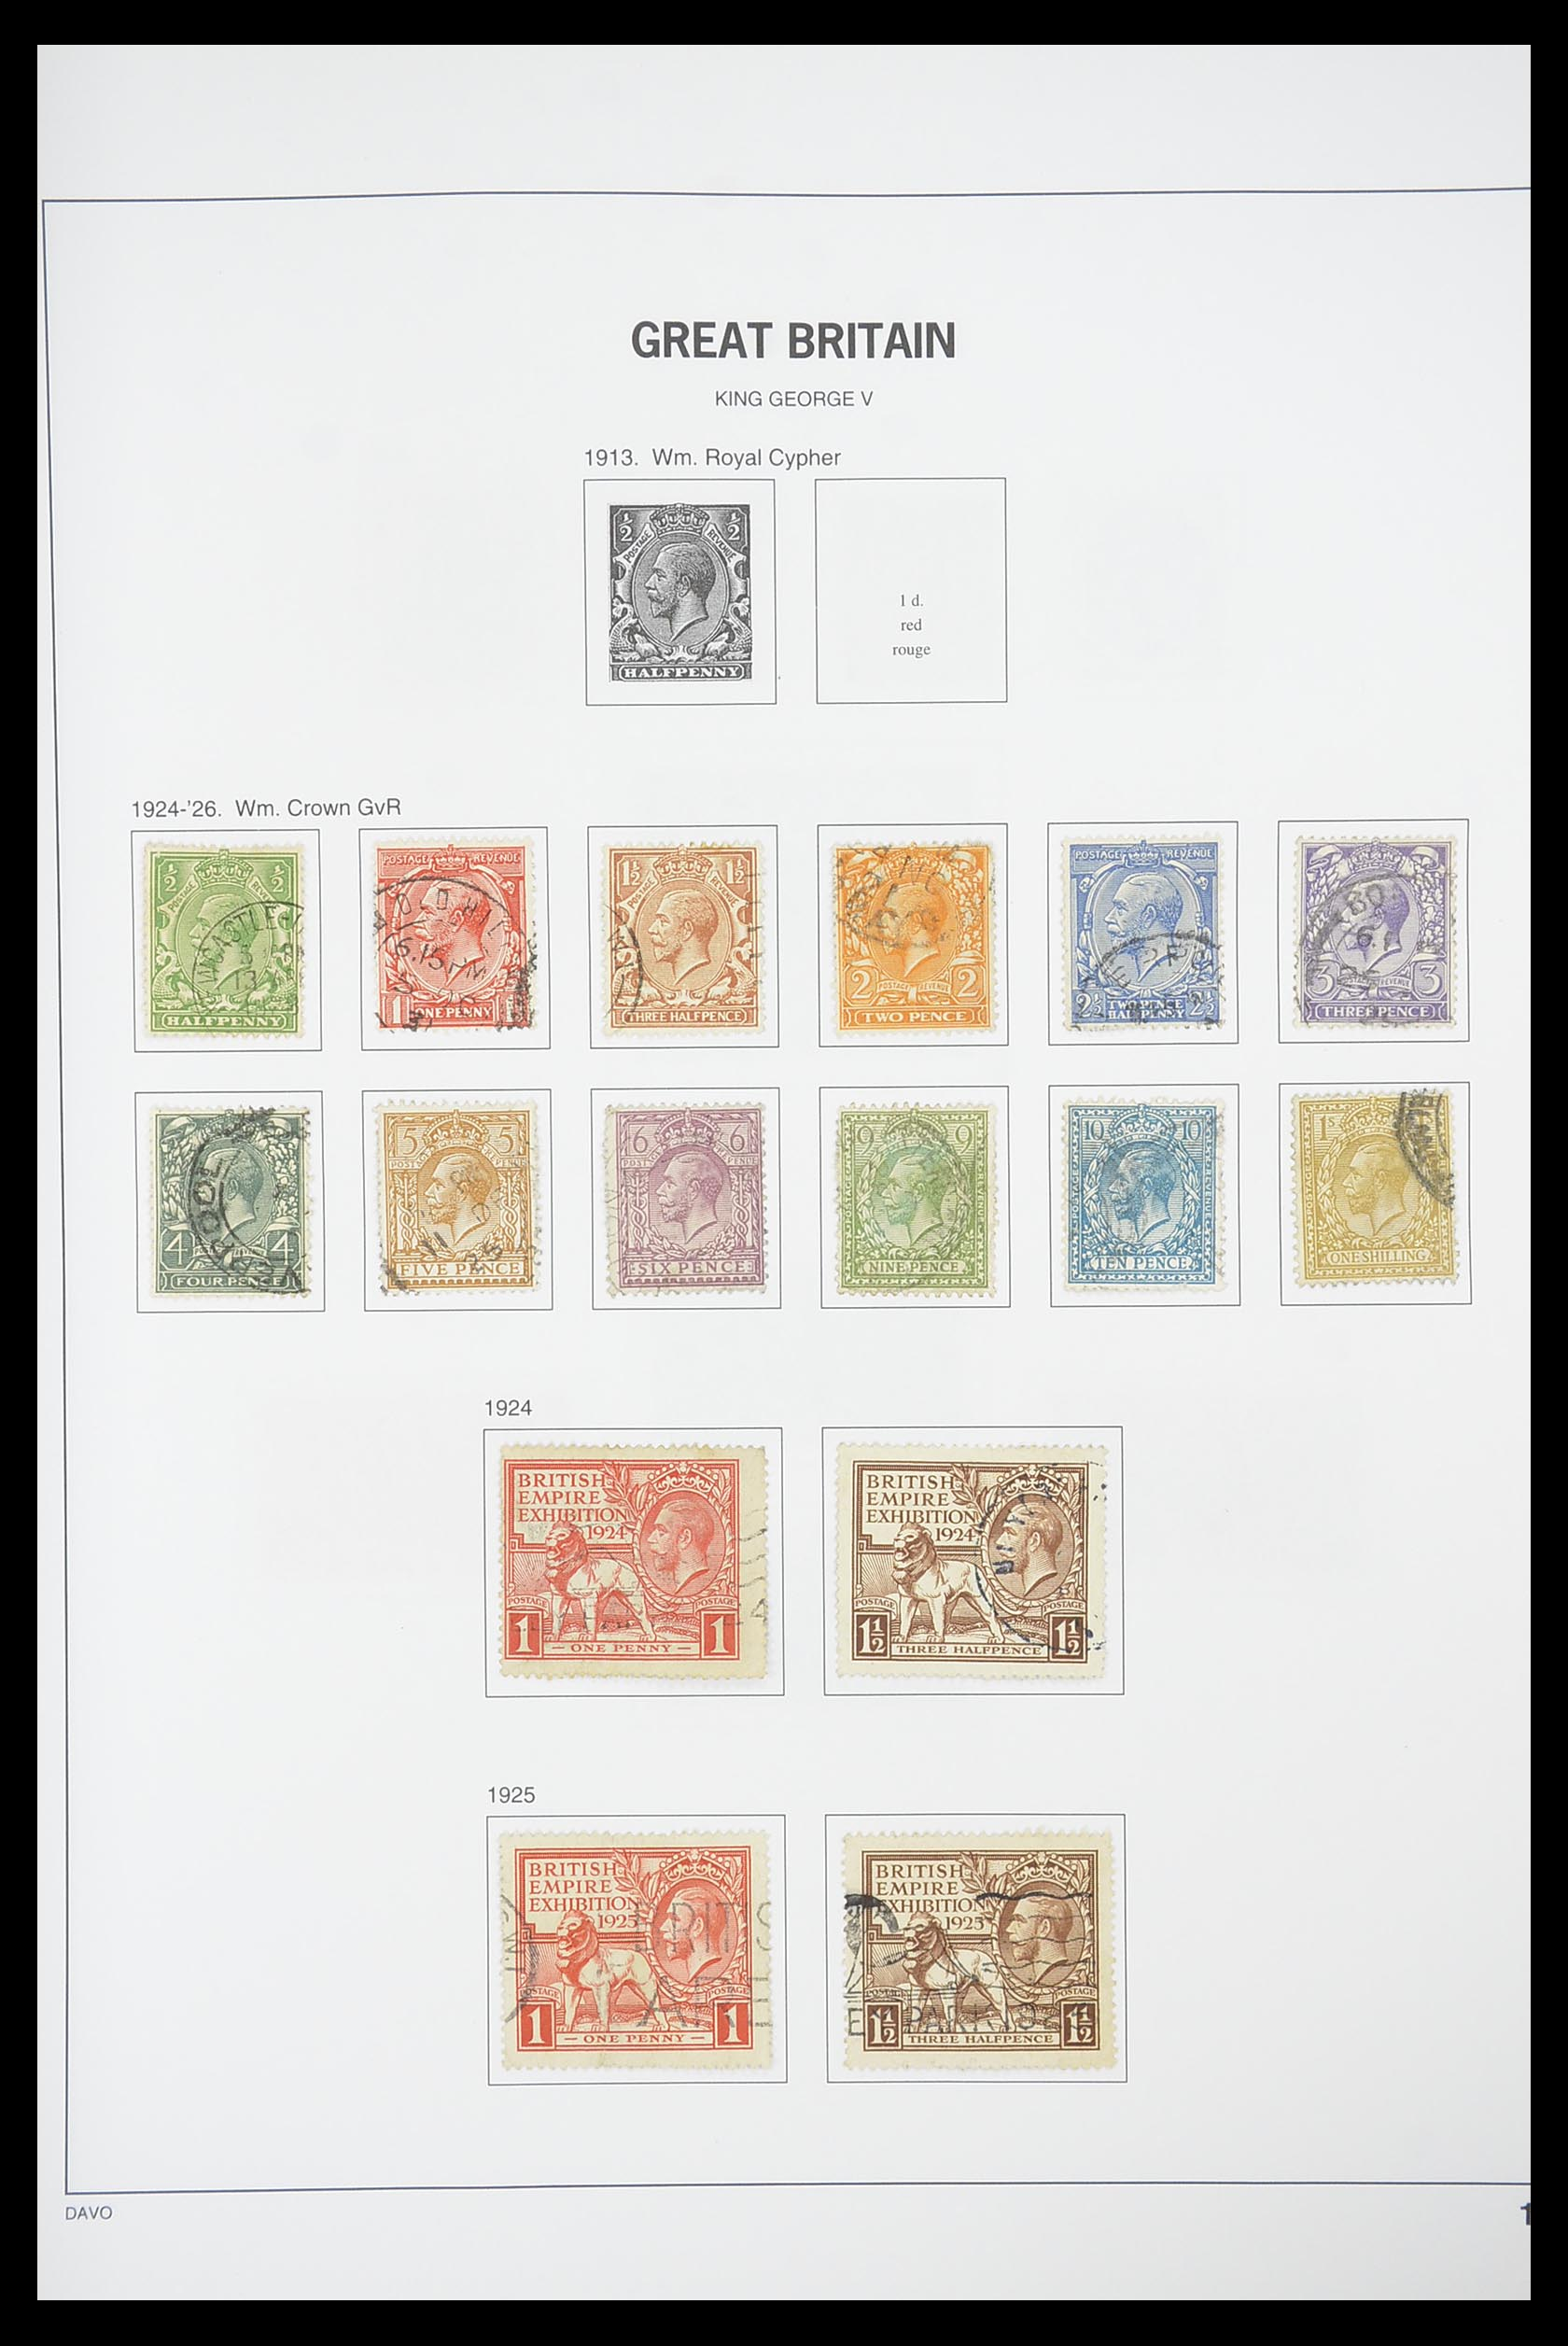 33898 010 - Stamp collection 33898 Great Britain 1840-2006.